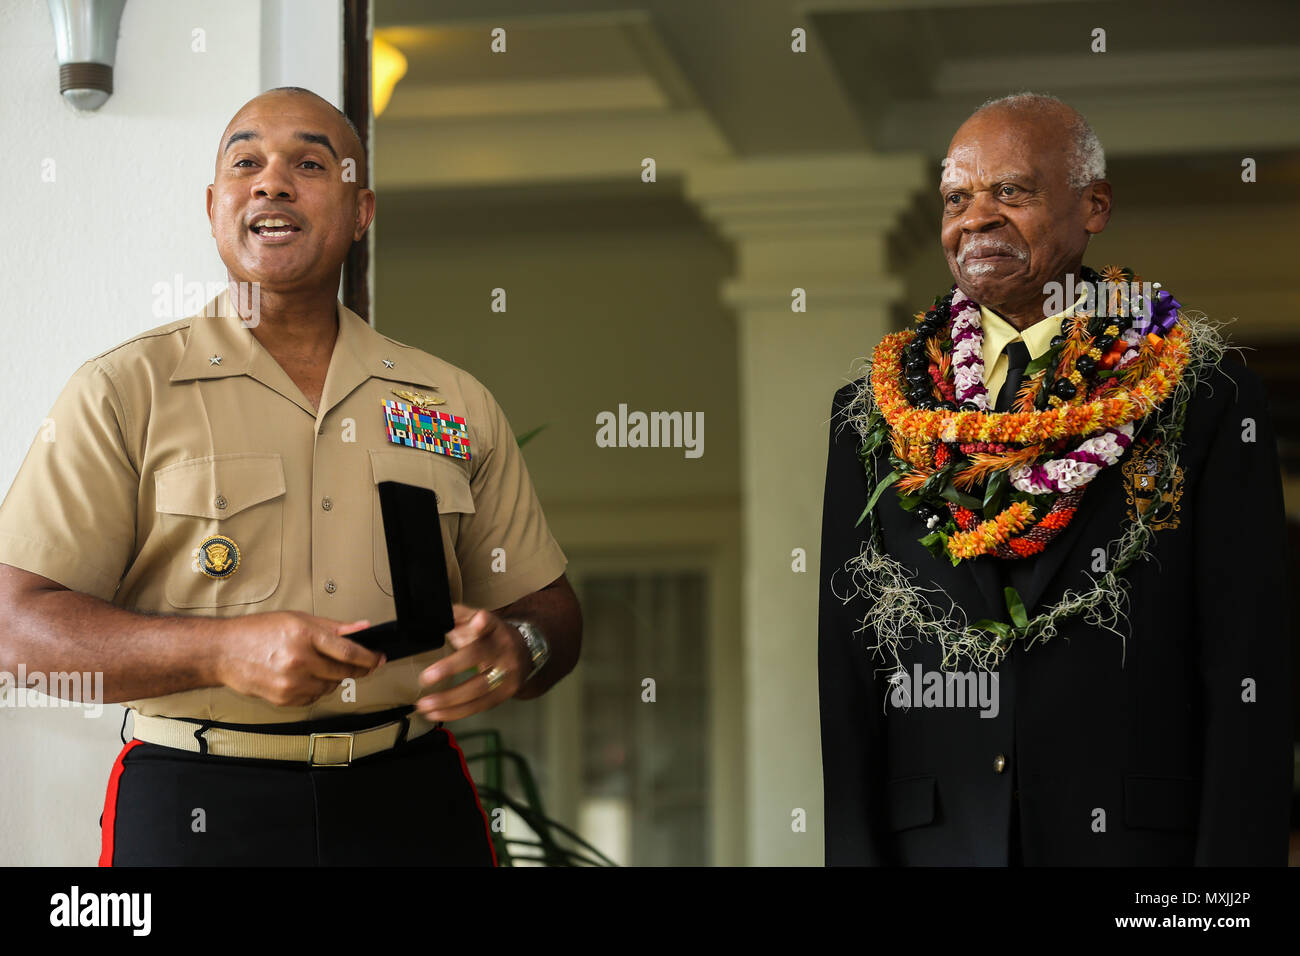 U.S. Marine Corps Brig. Gen. Brian W. Cavanaugh, deputy commander of U.S. Marine Corps Forces, Pacific, presents the Congressional Gold Medal to Dr. Ernest James Harris, Jr. in Honolulu, Hawaii, Nov. 12, 2016. Harris was awarded his Congressional Gold Medal for his service as a Montford Point Marine. (U.S. Marine Corps photo by Cpl. Wesley Timm) - Stock Image